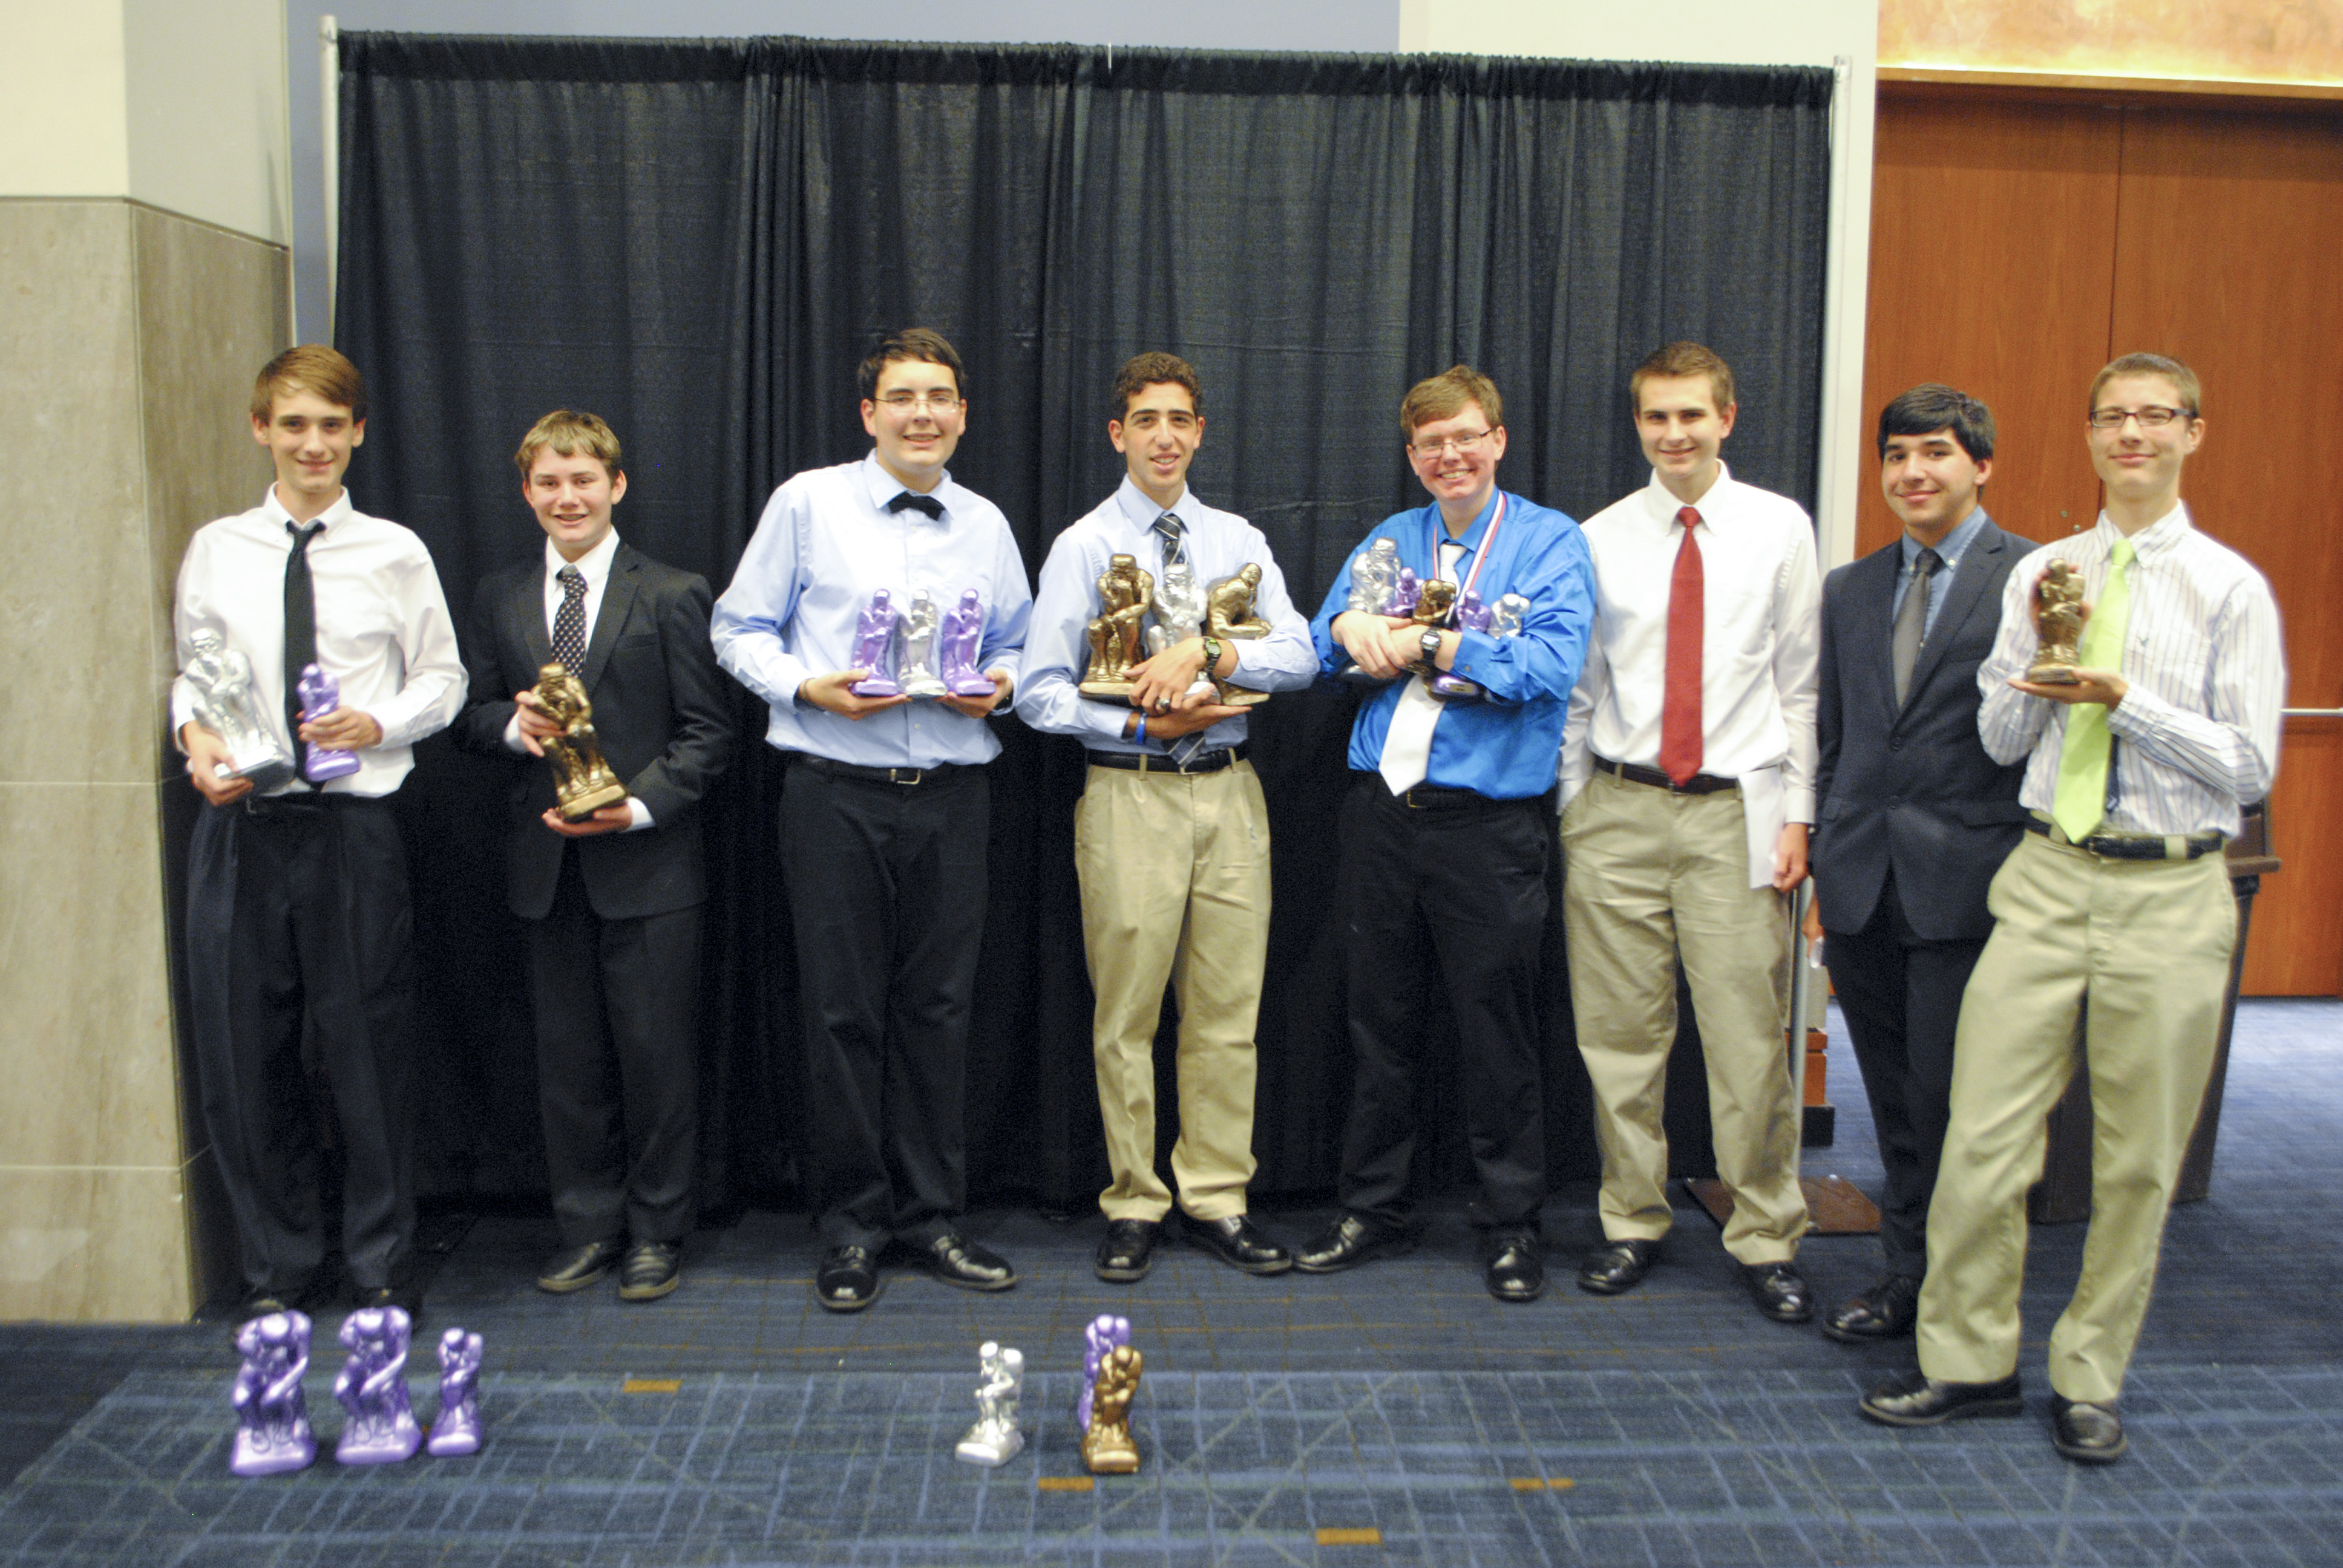 2013-2014 Brother Martin Academic Games Nationals Participants